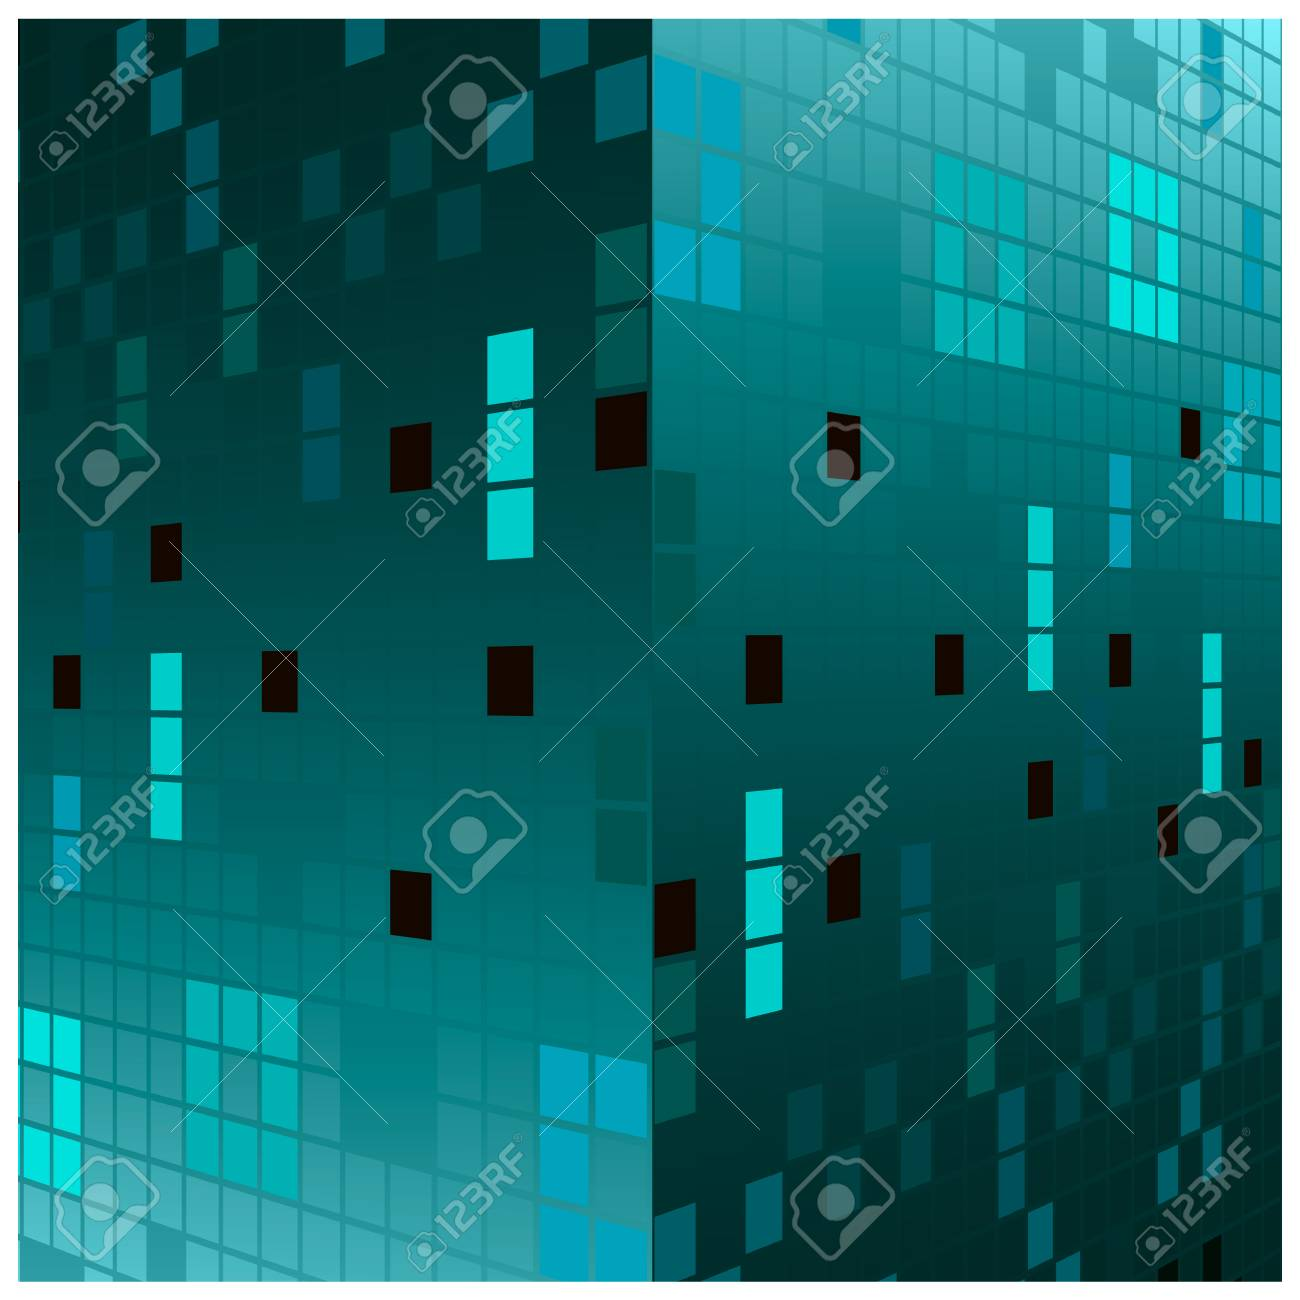 vector background with geometric objects - 58014932